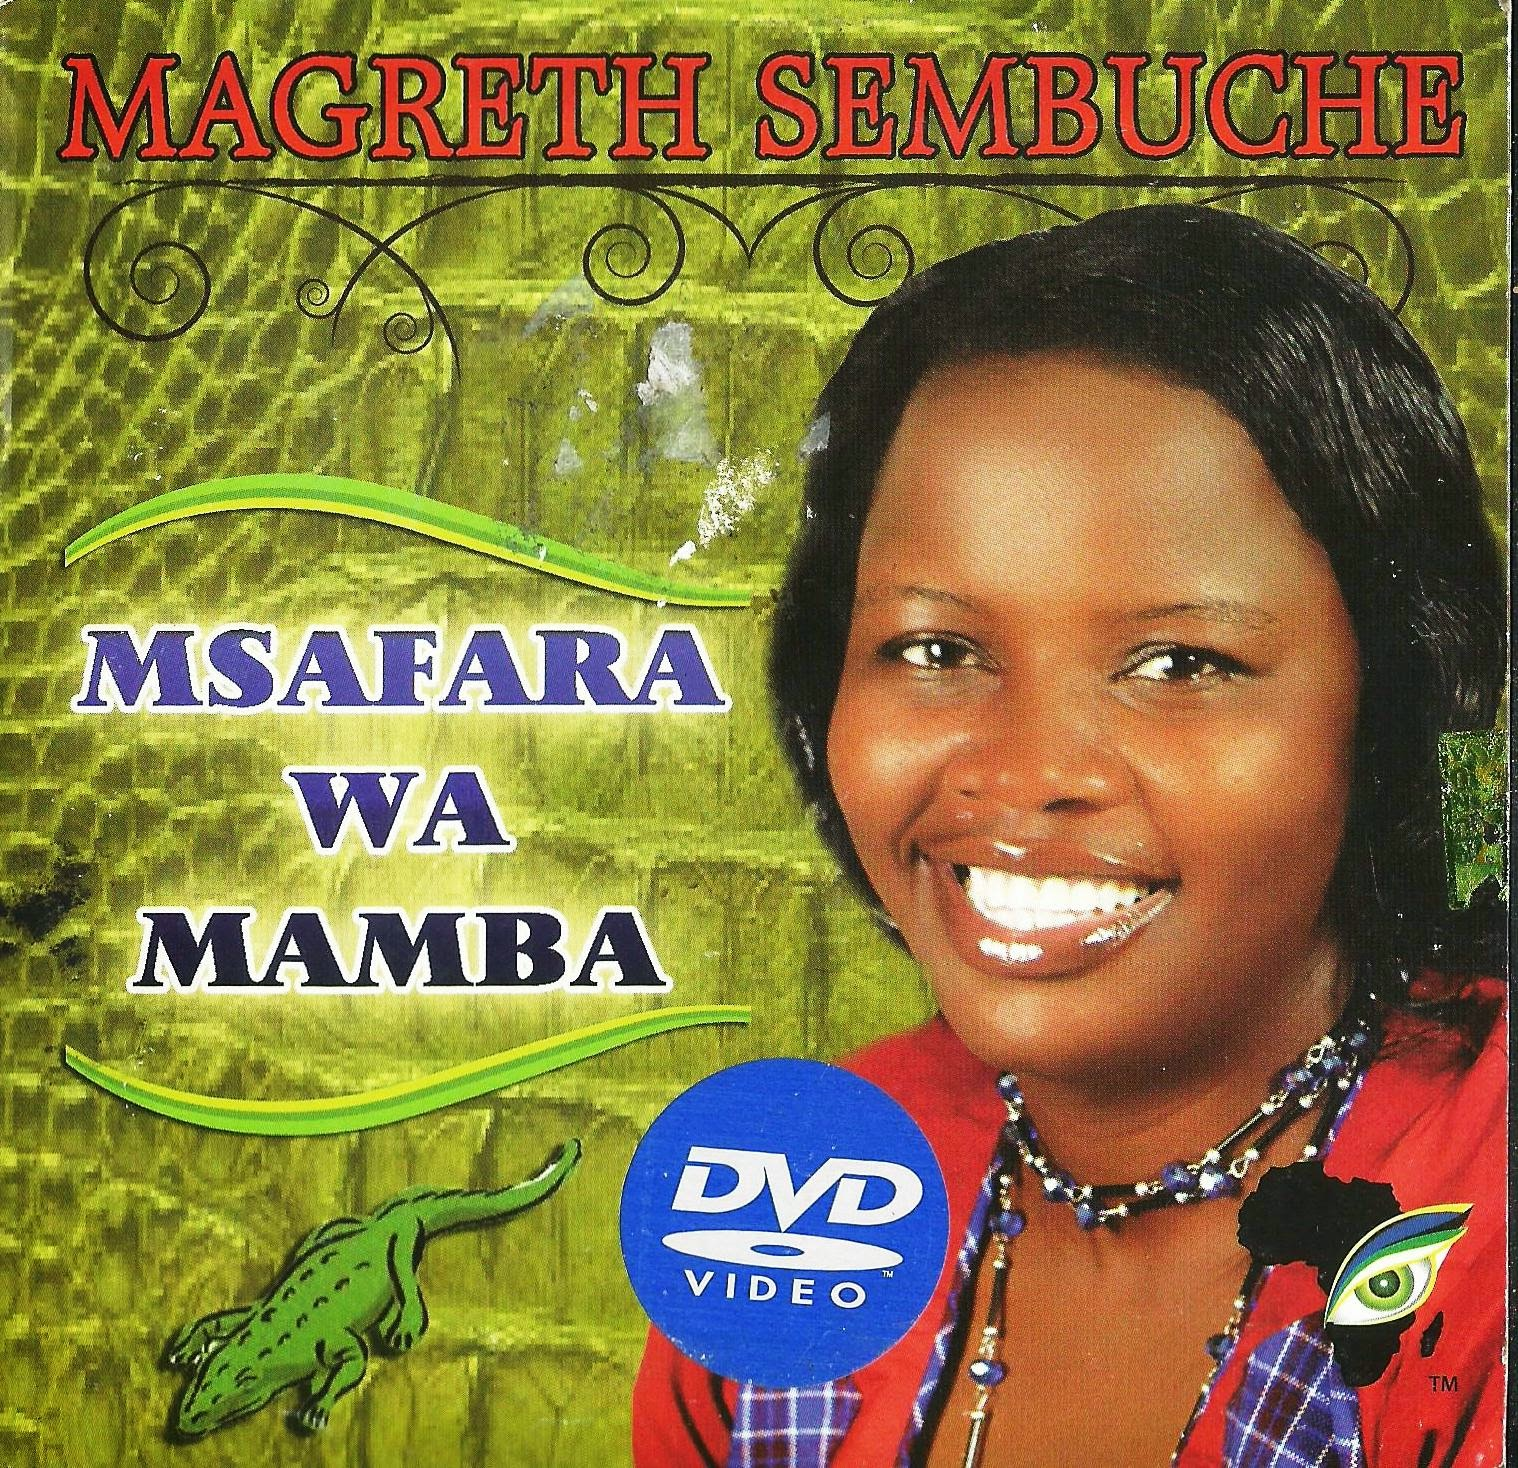 JIPATIE AUDIO CD YA MAGRETH SEMBUCHE